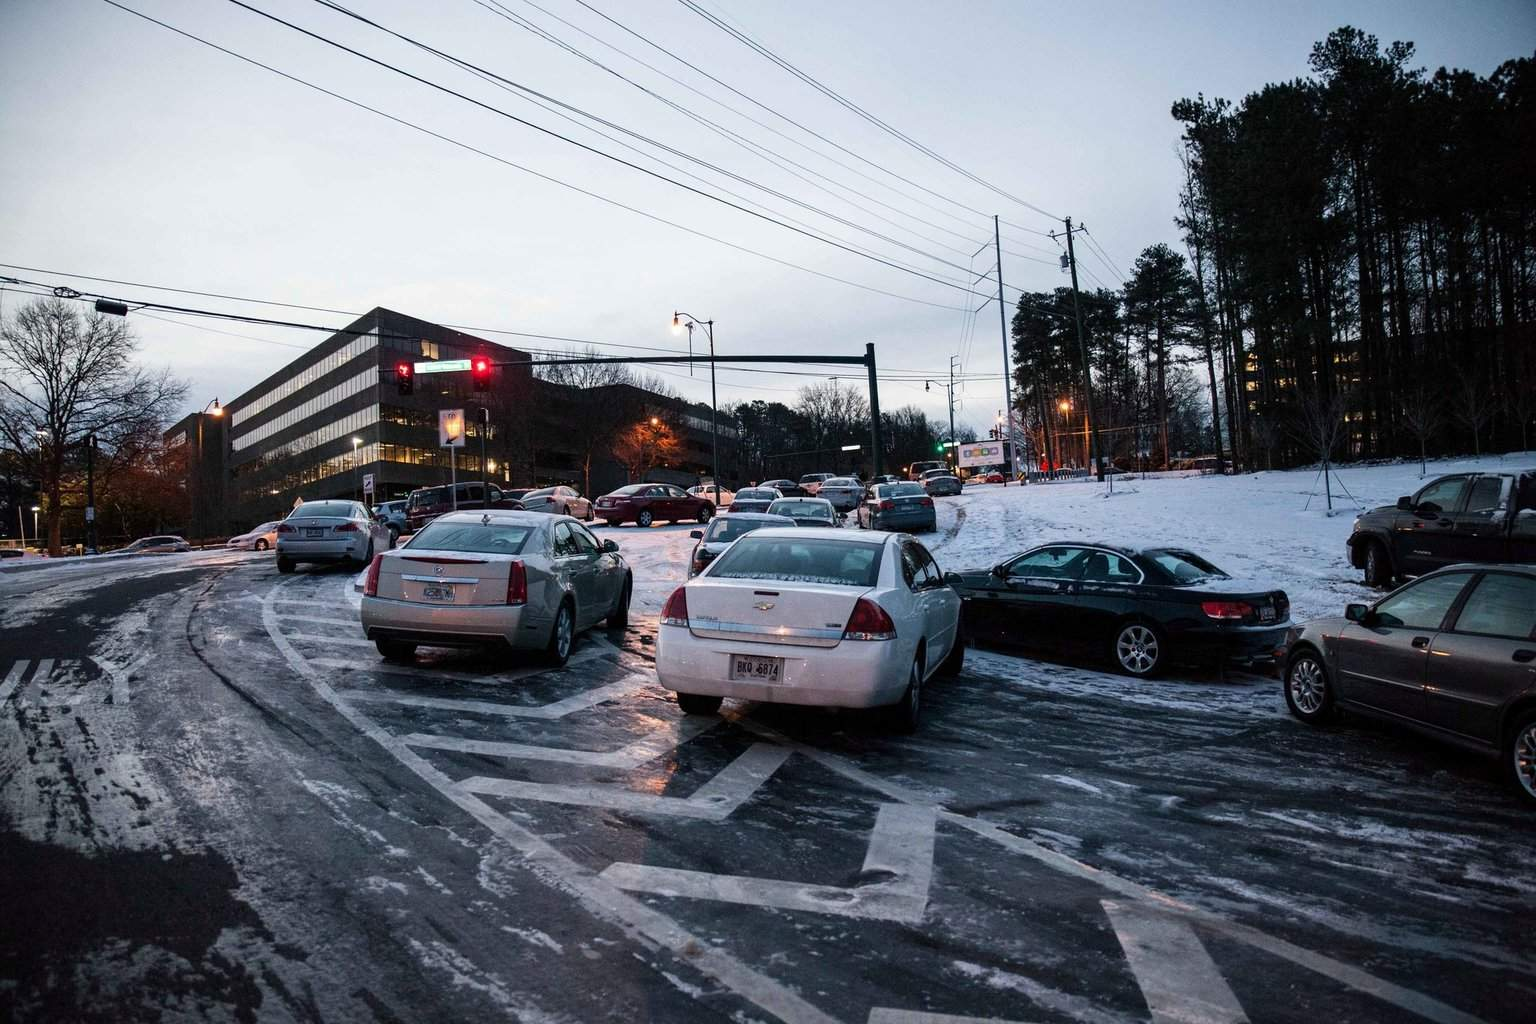 Vehicles abandoned Tuesday evening, still sat on an exit of Highway 285 in Dunwoody, GA on Wednesday. Photo credit: Associated Press